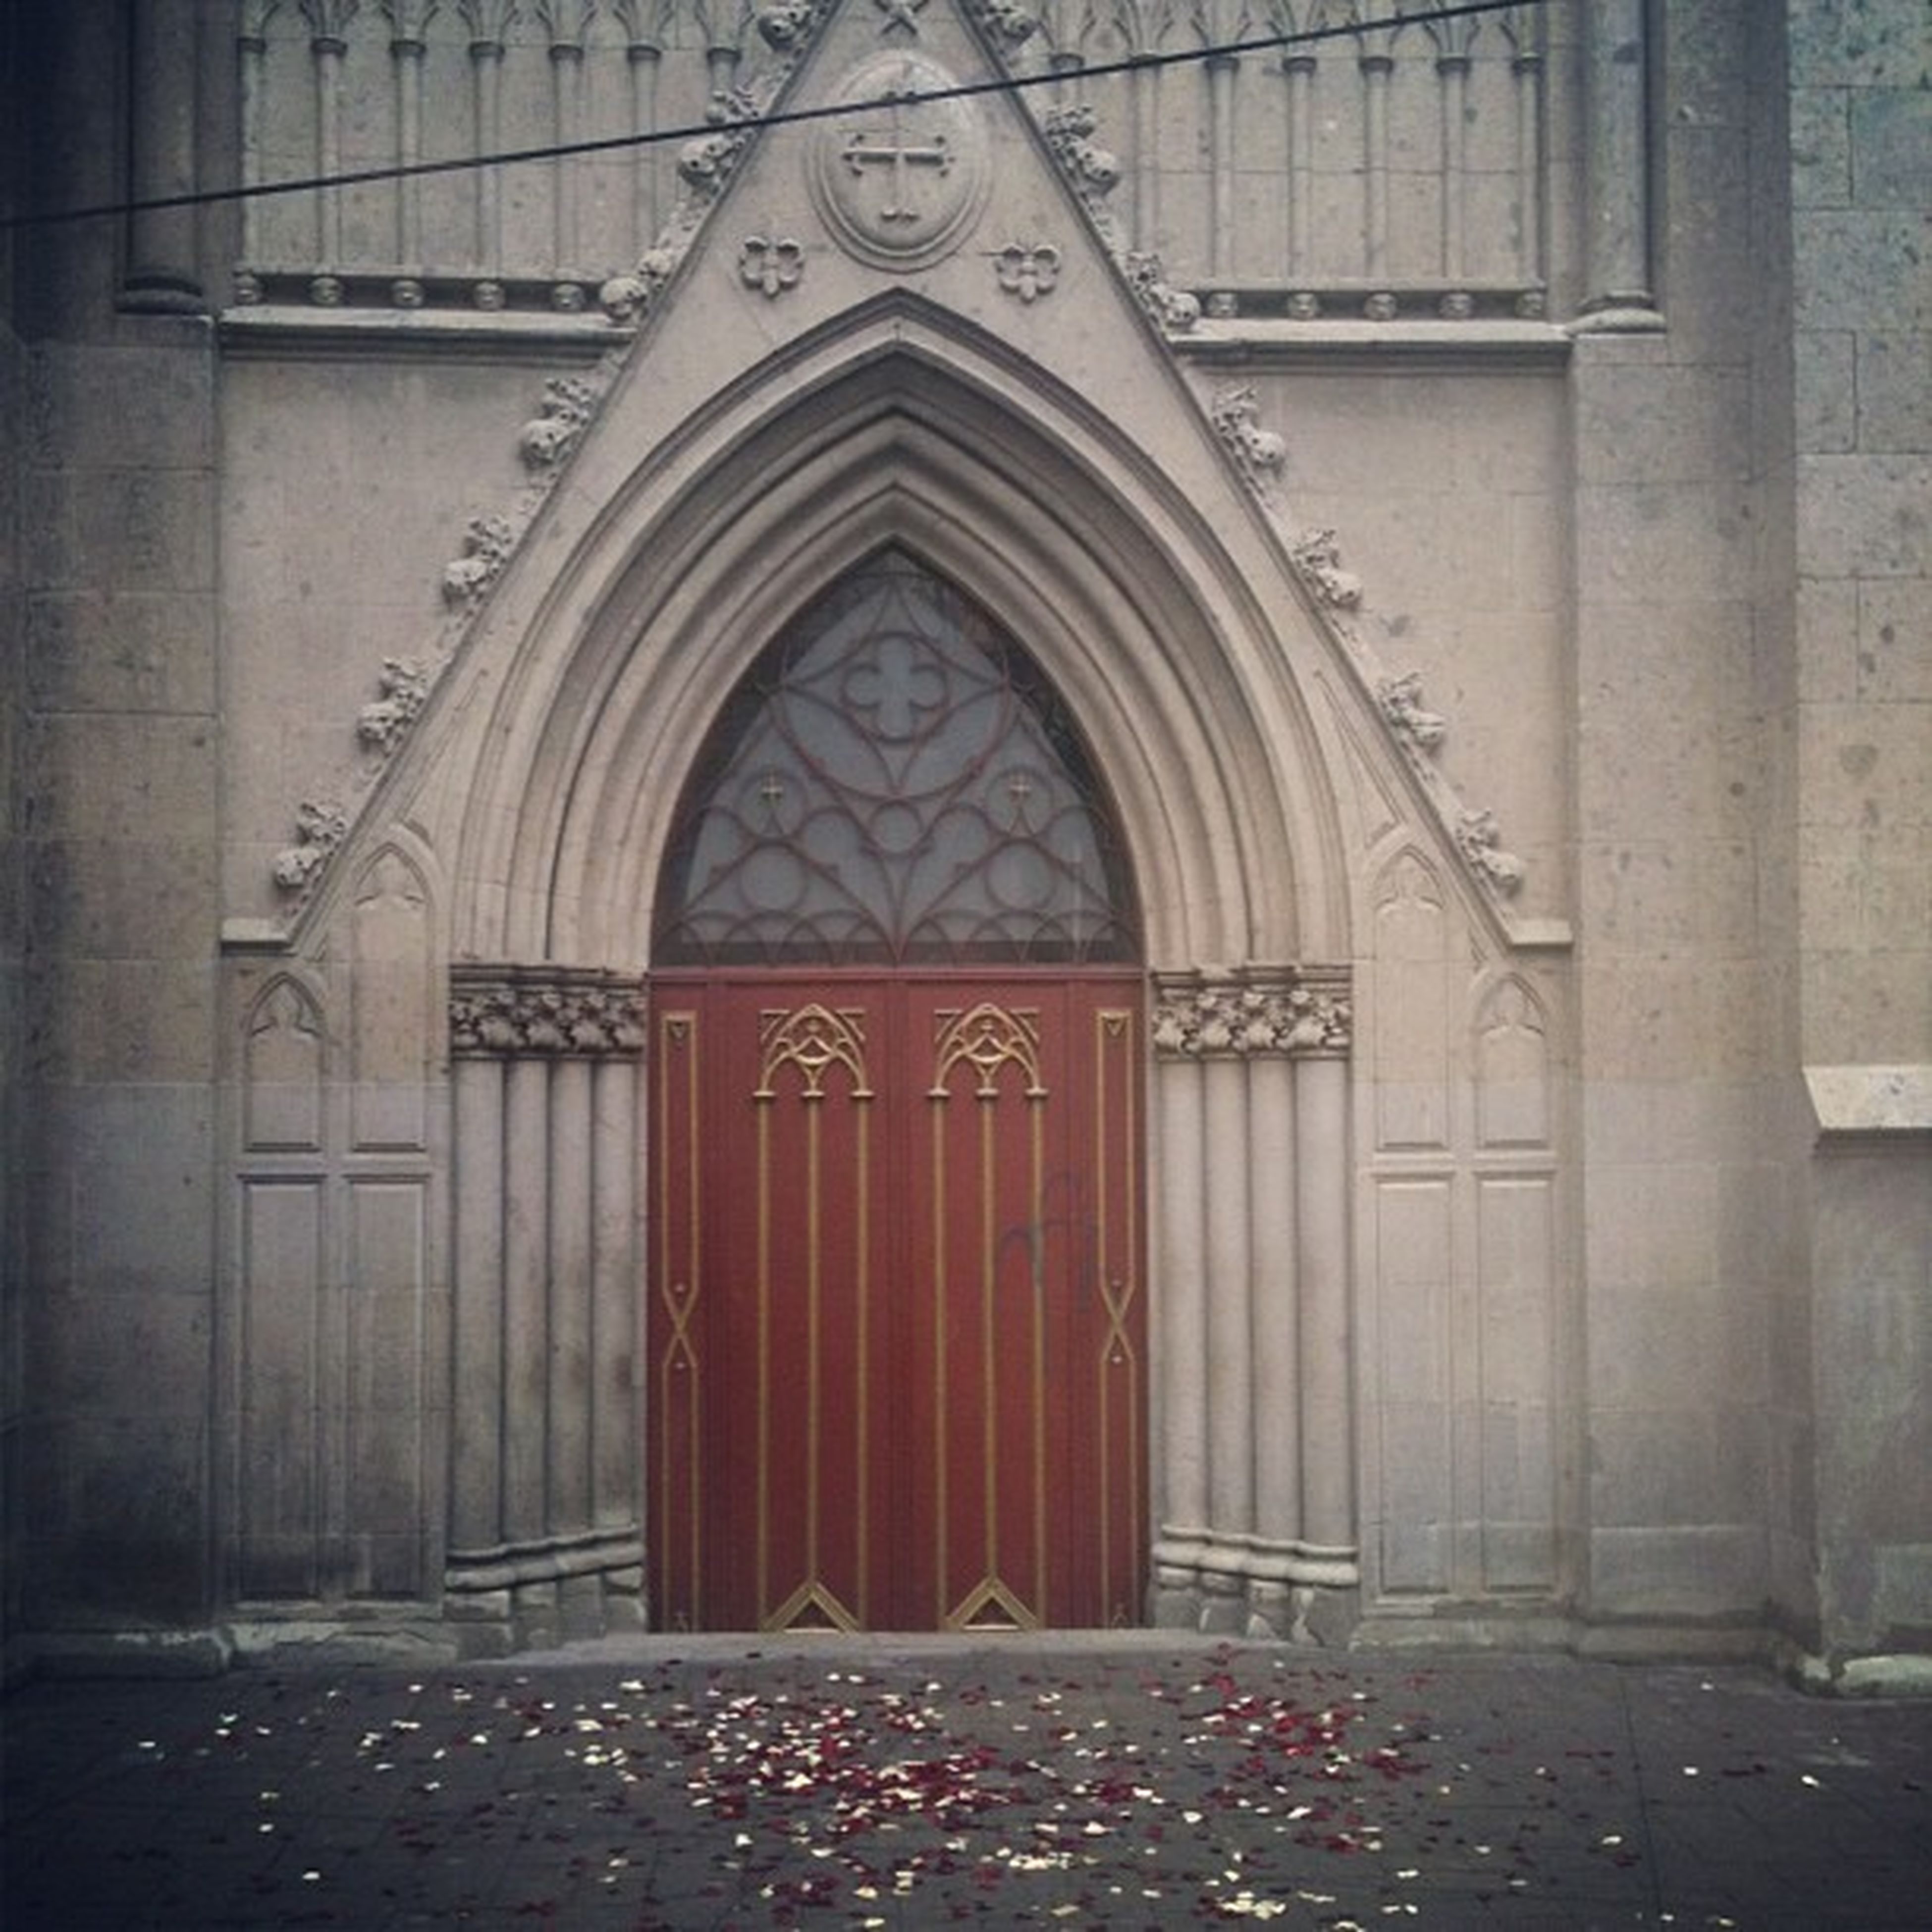 architecture, built structure, door, building exterior, closed, entrance, arch, window, place of worship, church, religion, house, facade, red, wood - material, spirituality, protection, safety, day